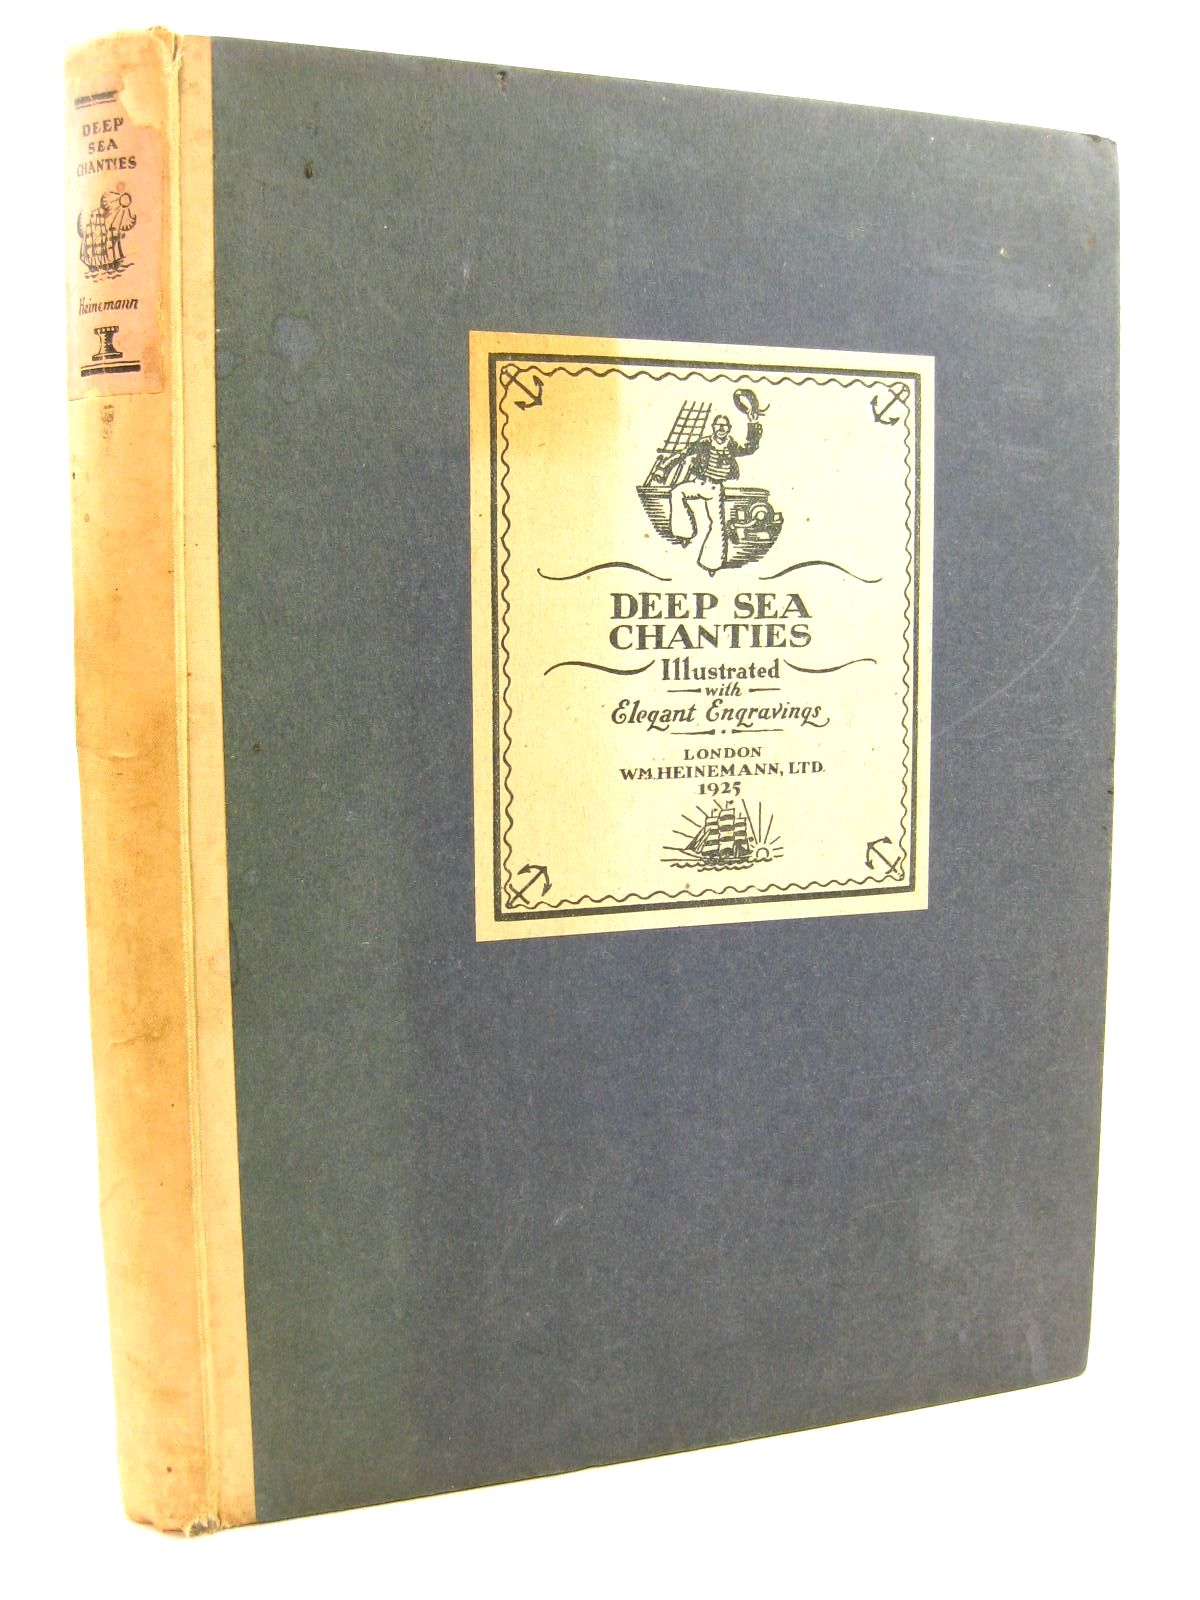 Photo of DEEP SEA CHANTIES written by Shay, Frank McFee, William illustrated by Wilson, Edward A. published by William Heinemann Ltd. (STOCK CODE: 1316787)  for sale by Stella & Rose's Books